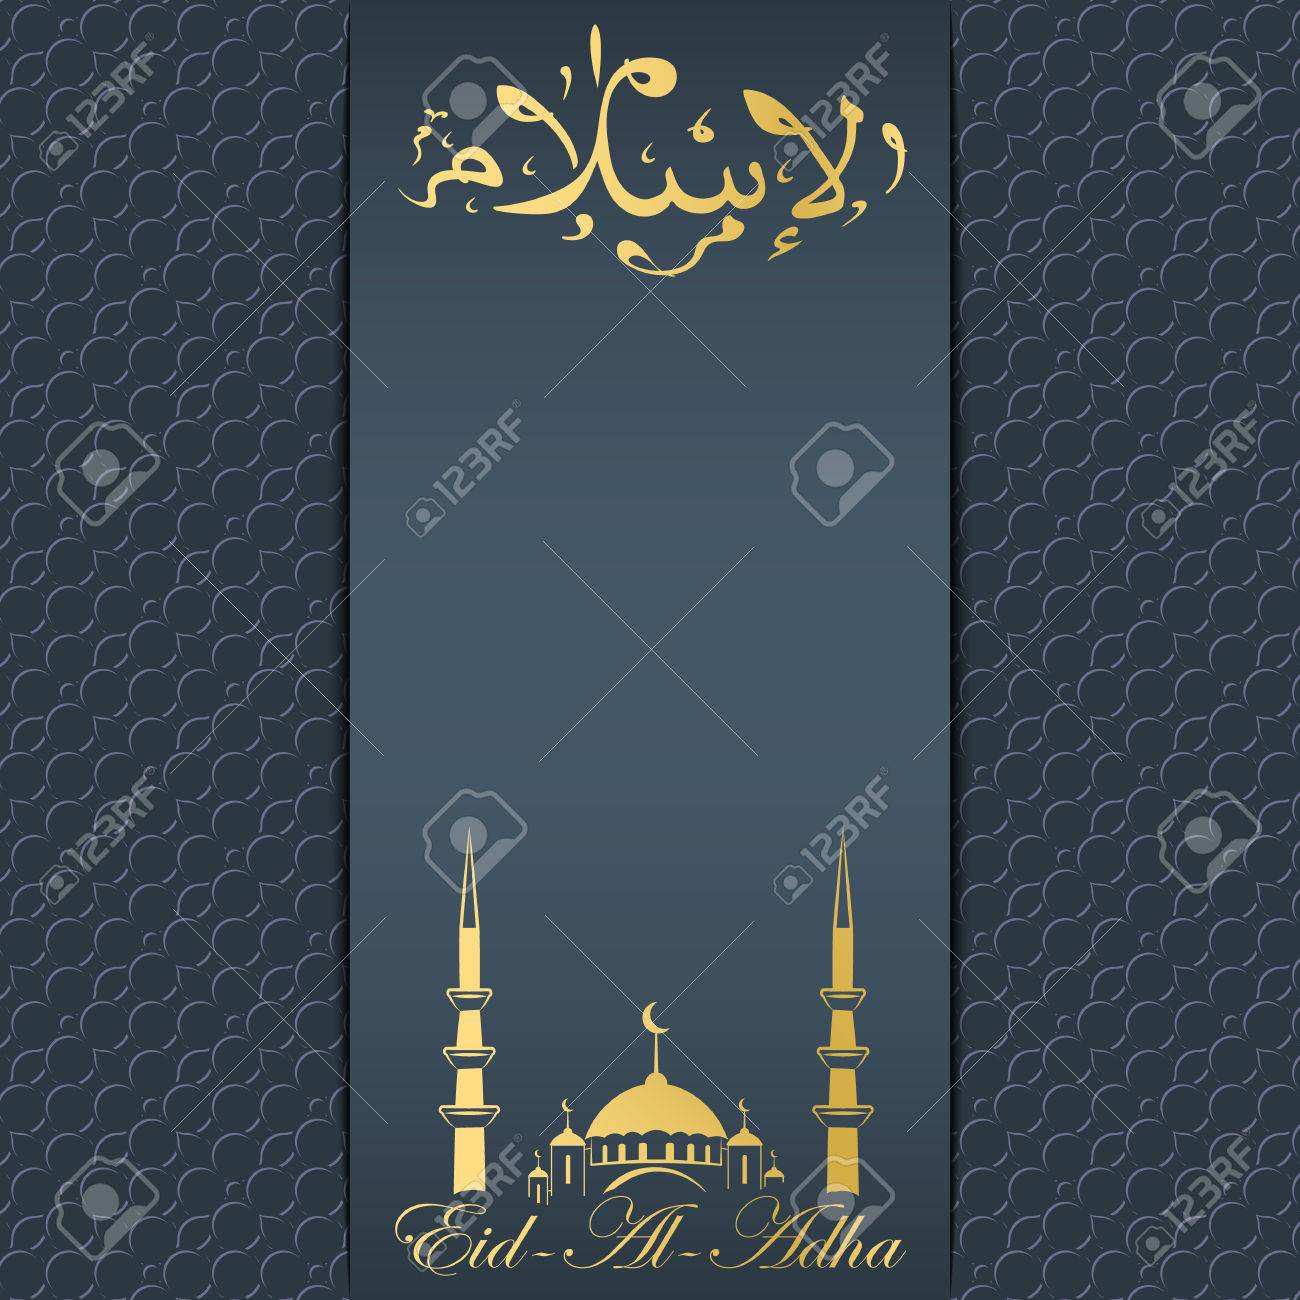 Eid al adha greeting cards religious themed background in retro eid al adha greeting cards religious themed background in retro style inscription in kristyandbryce Image collections